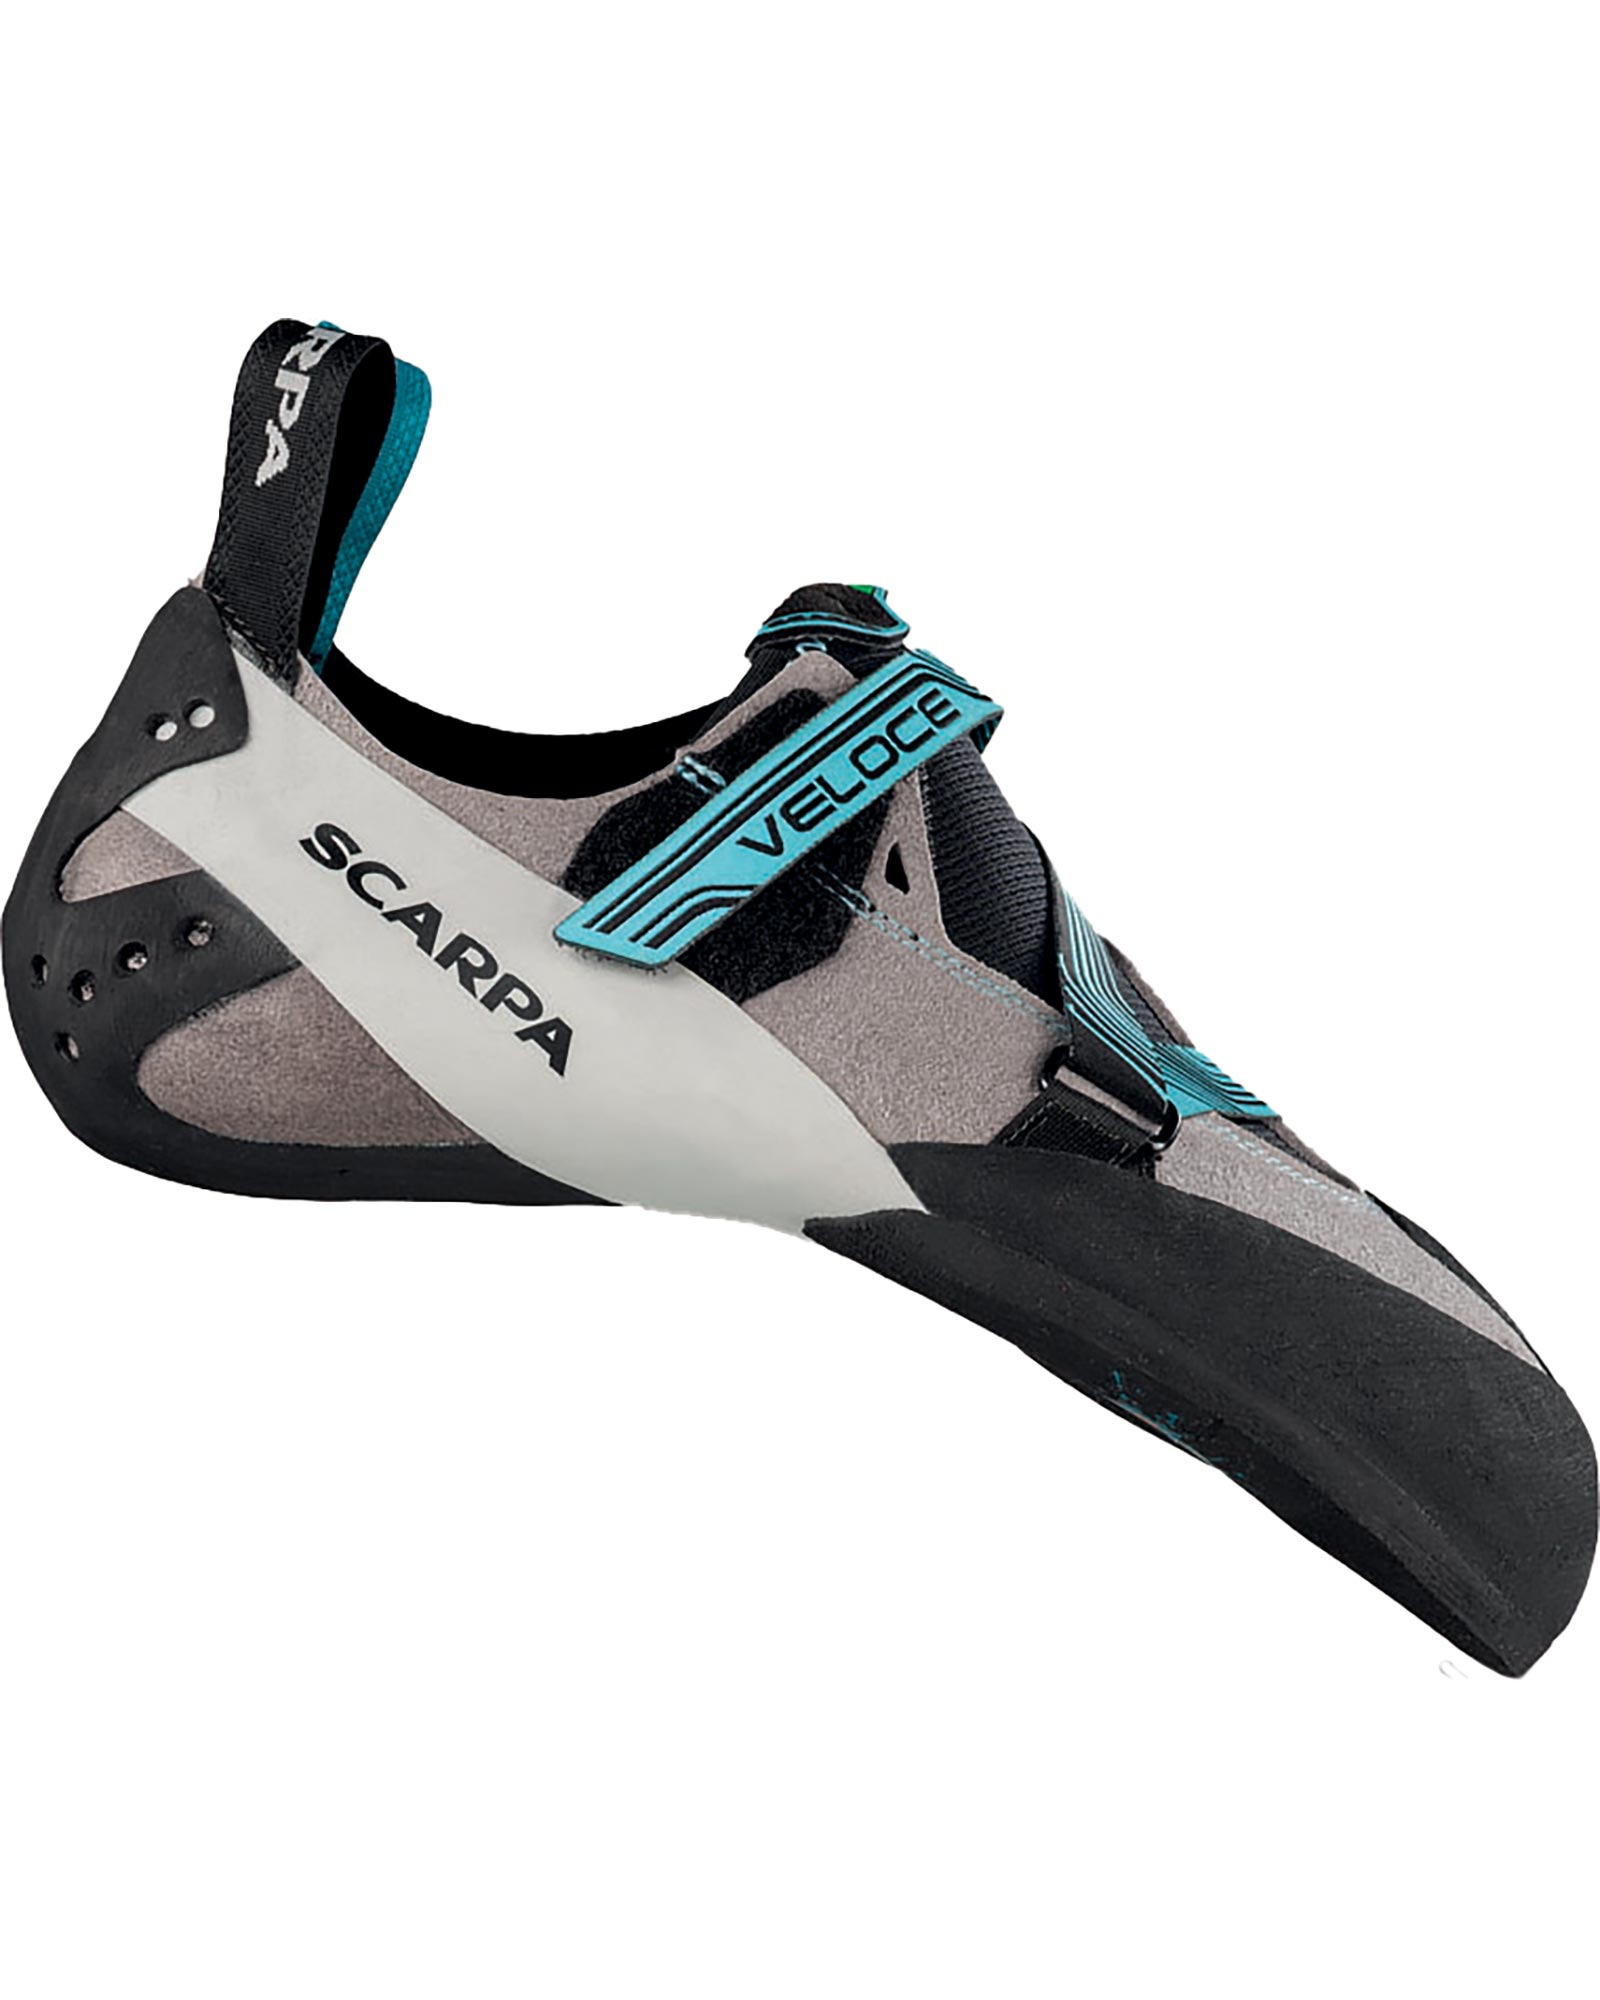 Scarpa Womens Veloce Climbing Shoes